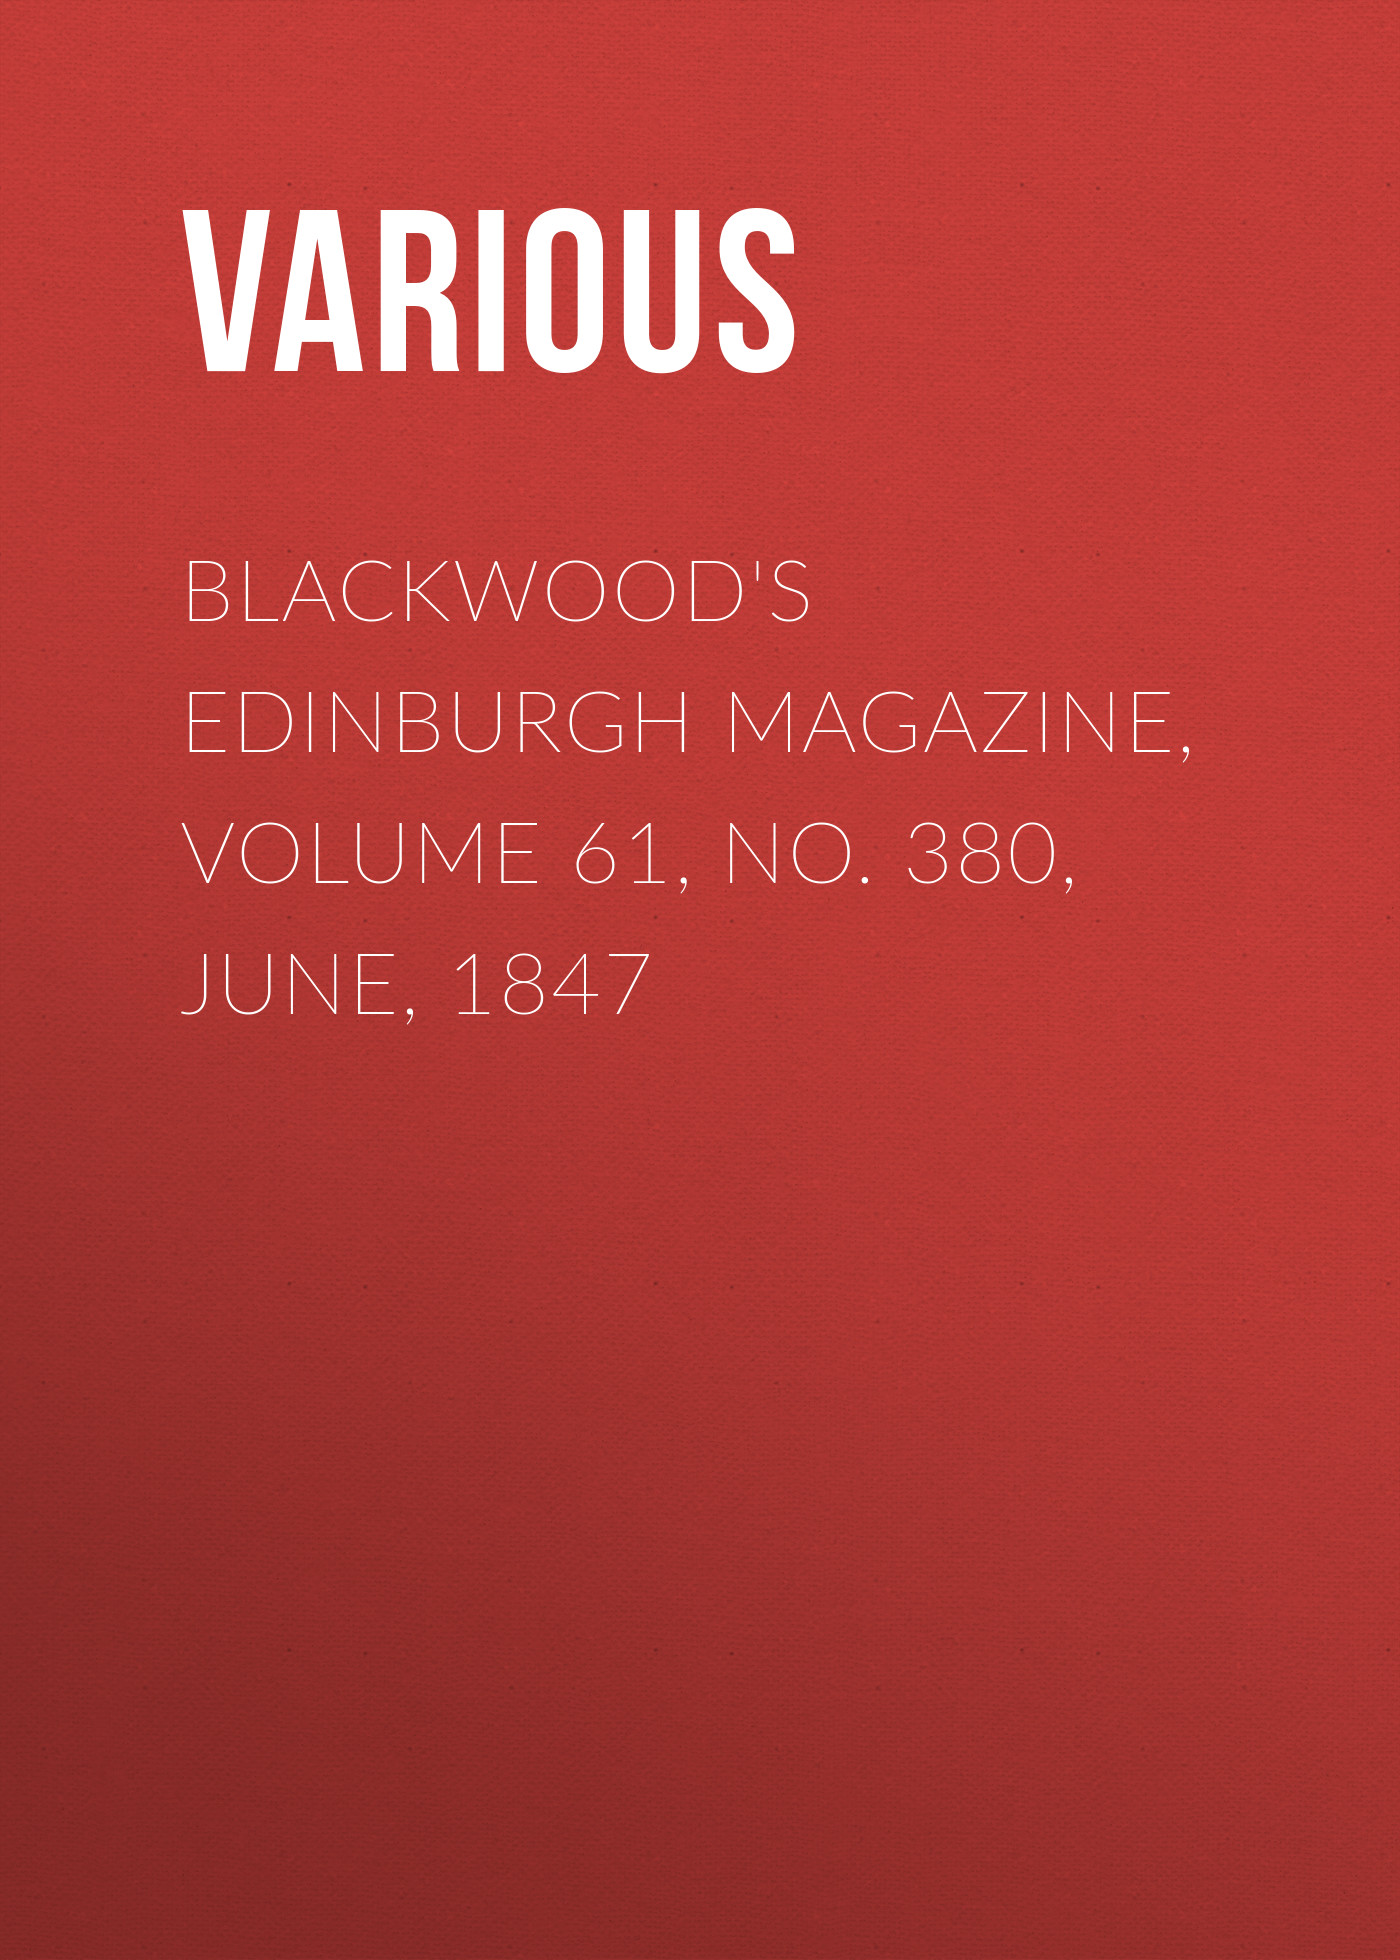 лучшая цена Various Blackwood's Edinburgh Magazine, Volume 61, No. 380, June, 1847